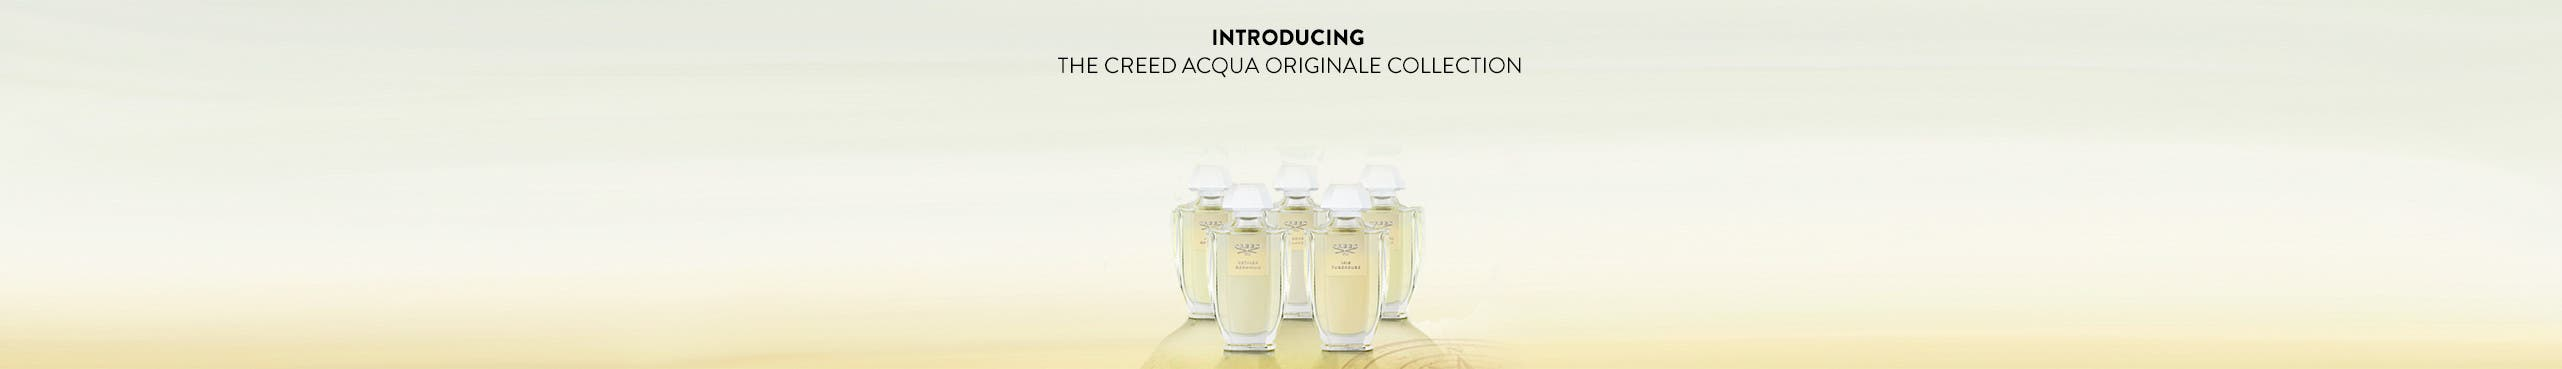 Introducing the Creed Acqua Originale Collection.